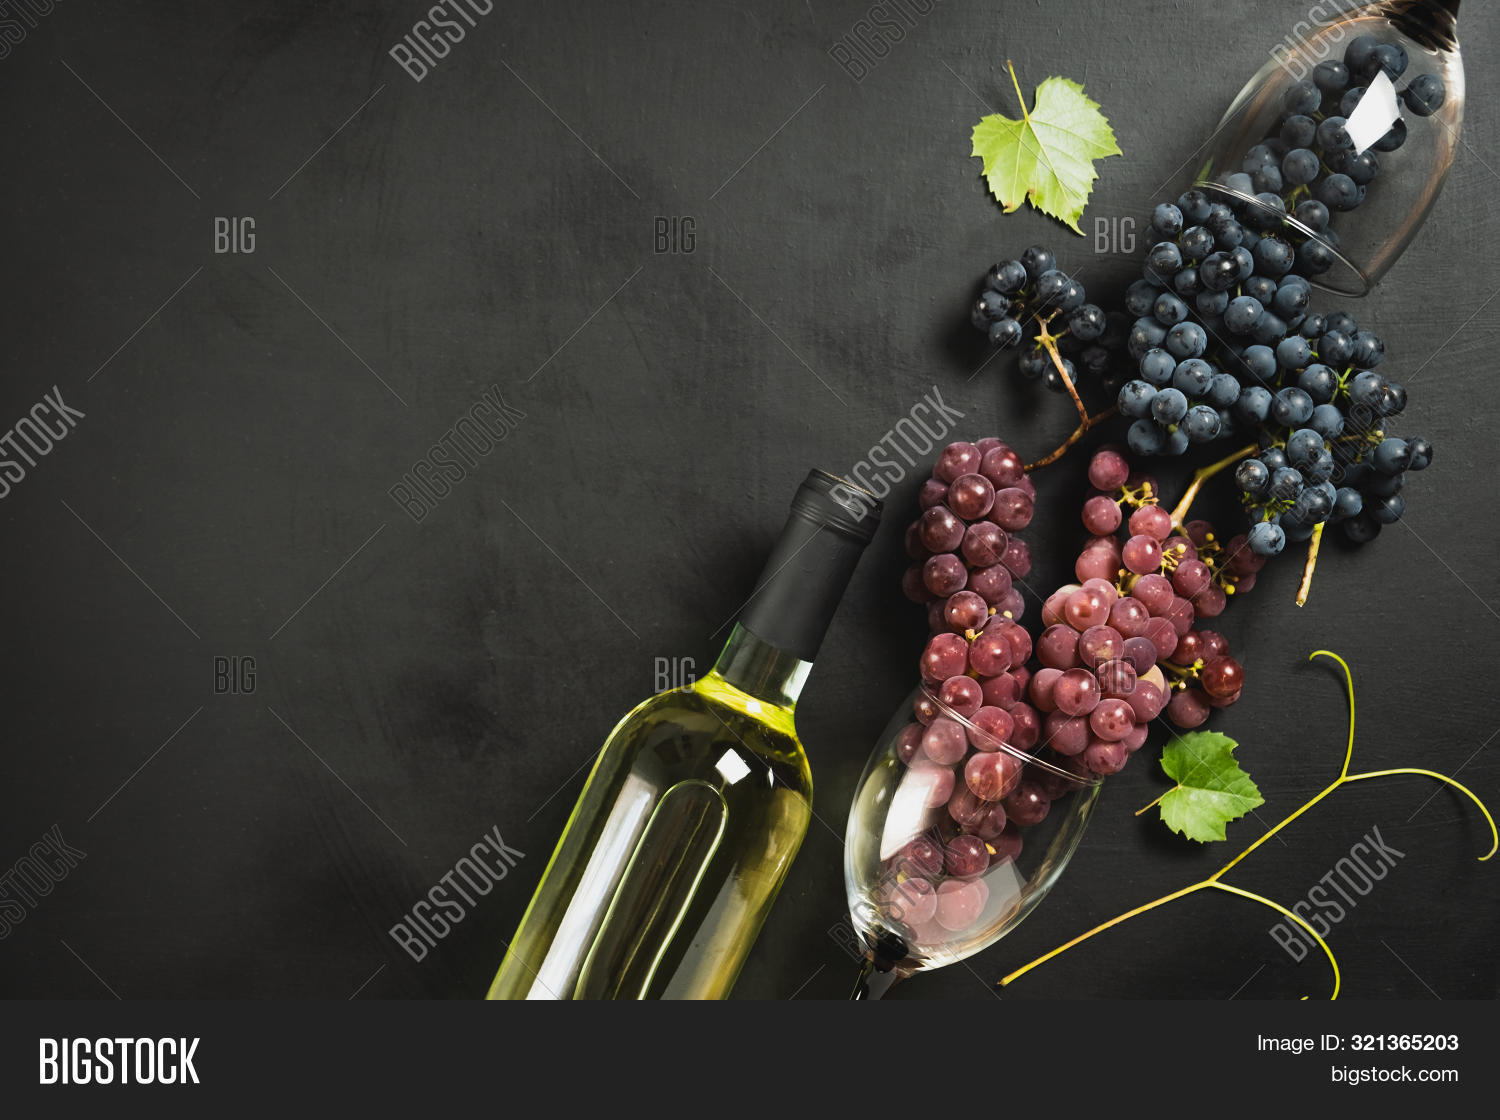 White wine bottle, wineglasses, fresh grapes and leaves on black wood background. Flat lay, top view, copy space. Wine bar, winery, wine tasting concept